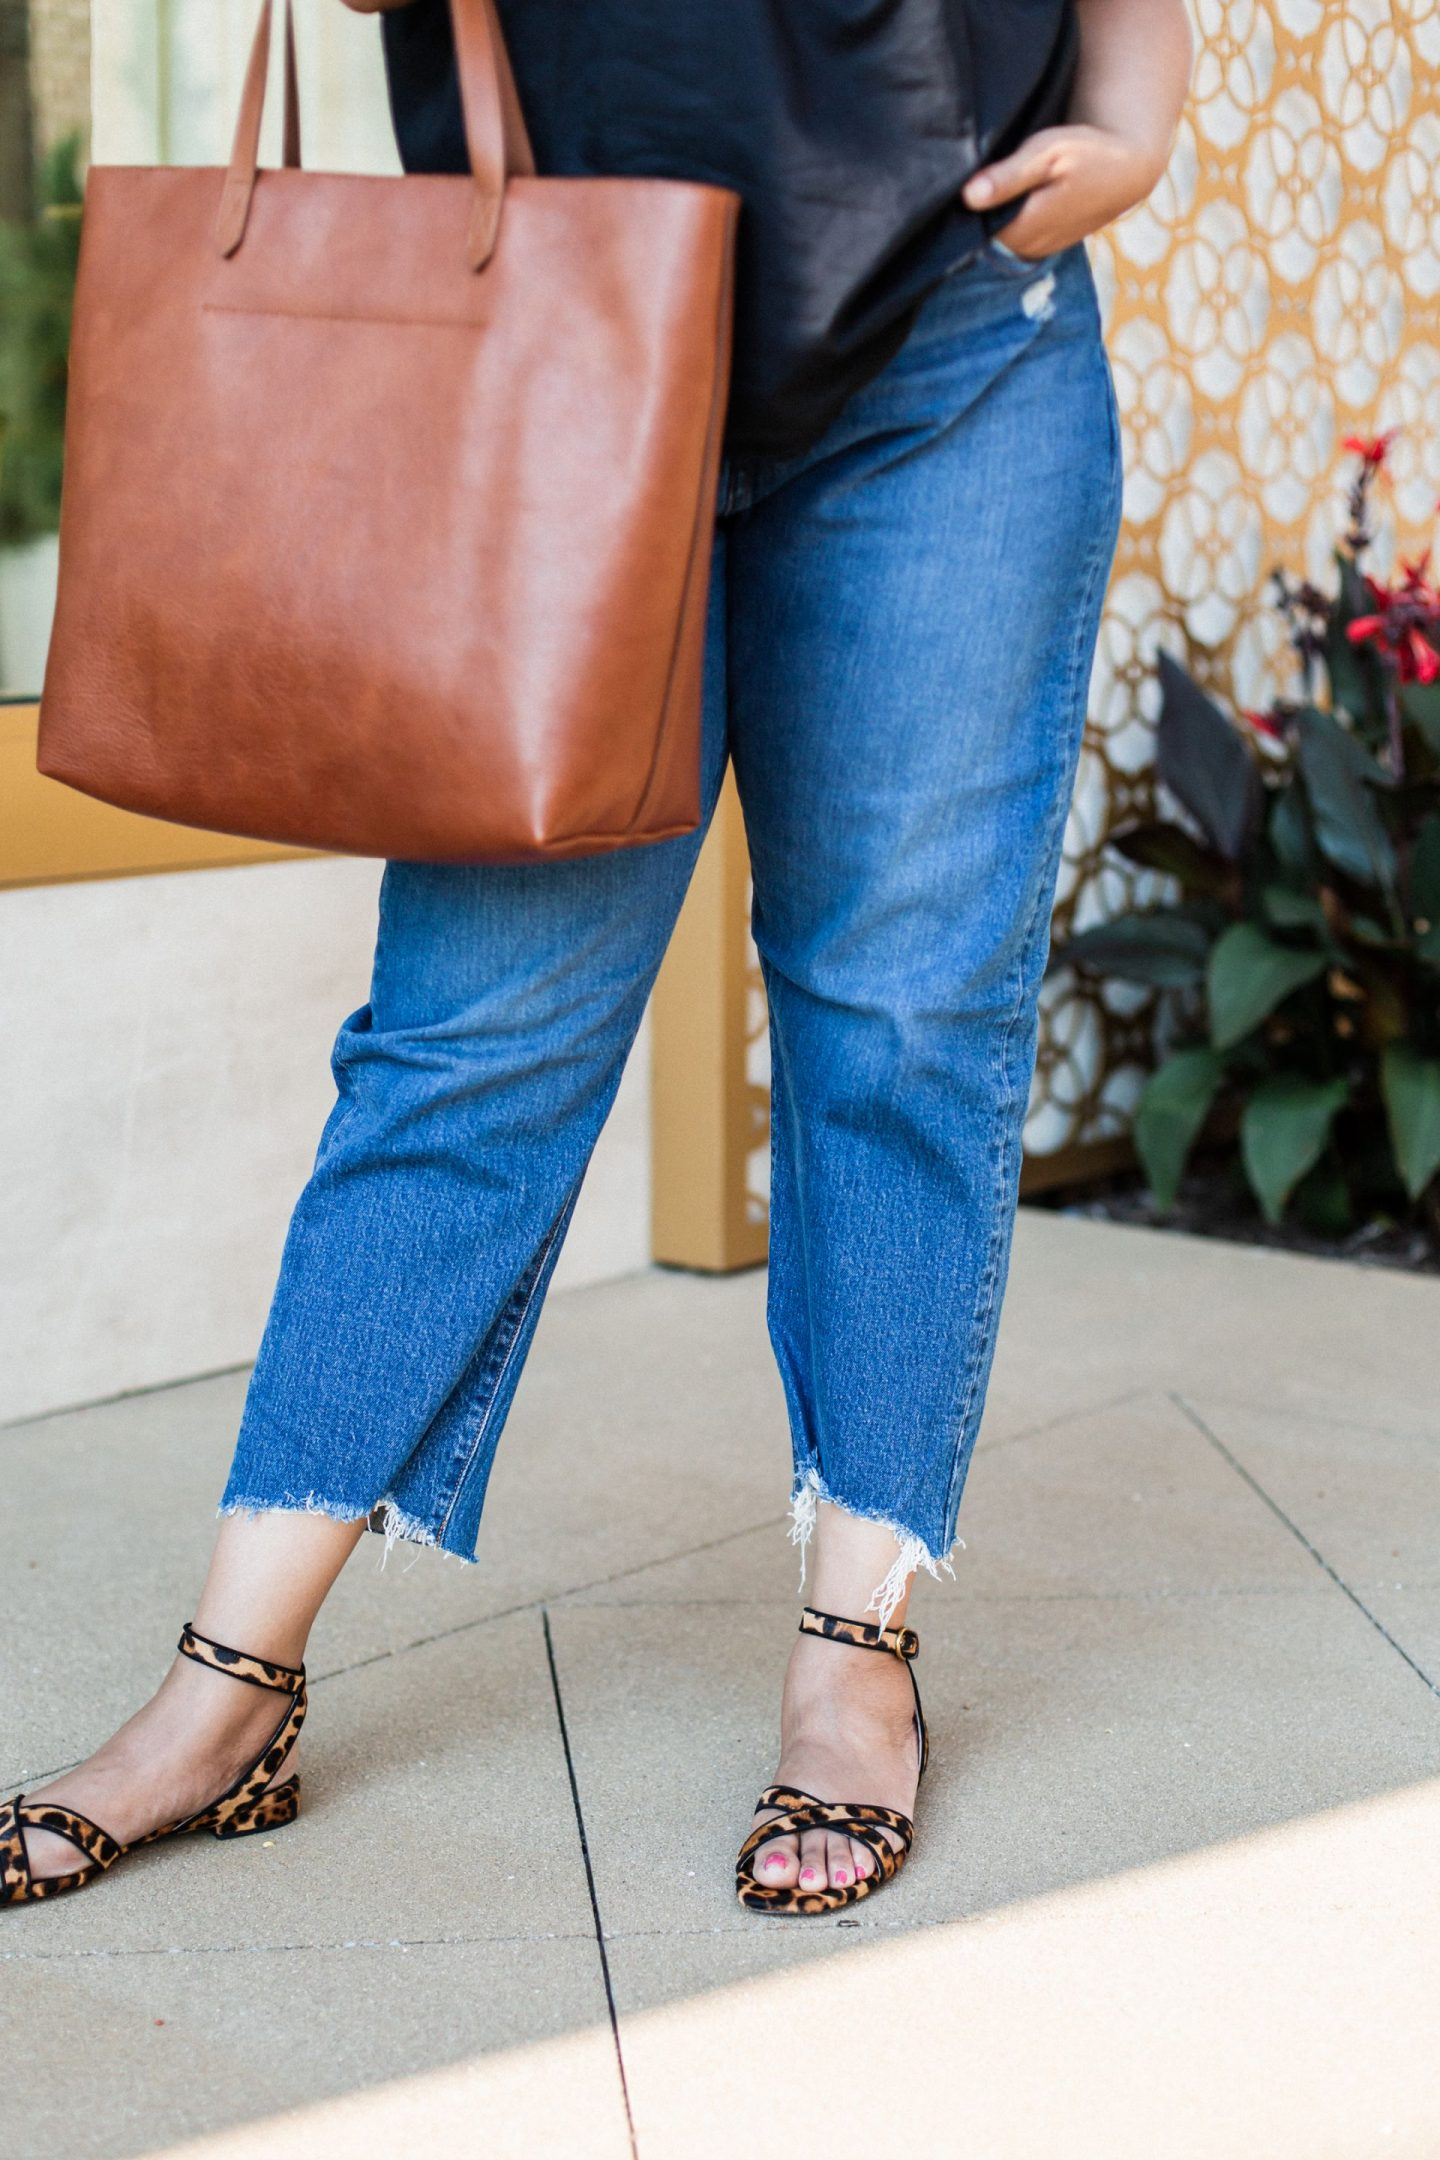 Zappos Womens Shoes by popular Kentucky fashion blog, Really Rynetta: image of a woman wearing a Zappos black flutter sleeve top, Zappos jeans, and Zappos leopard print block heel sandals.